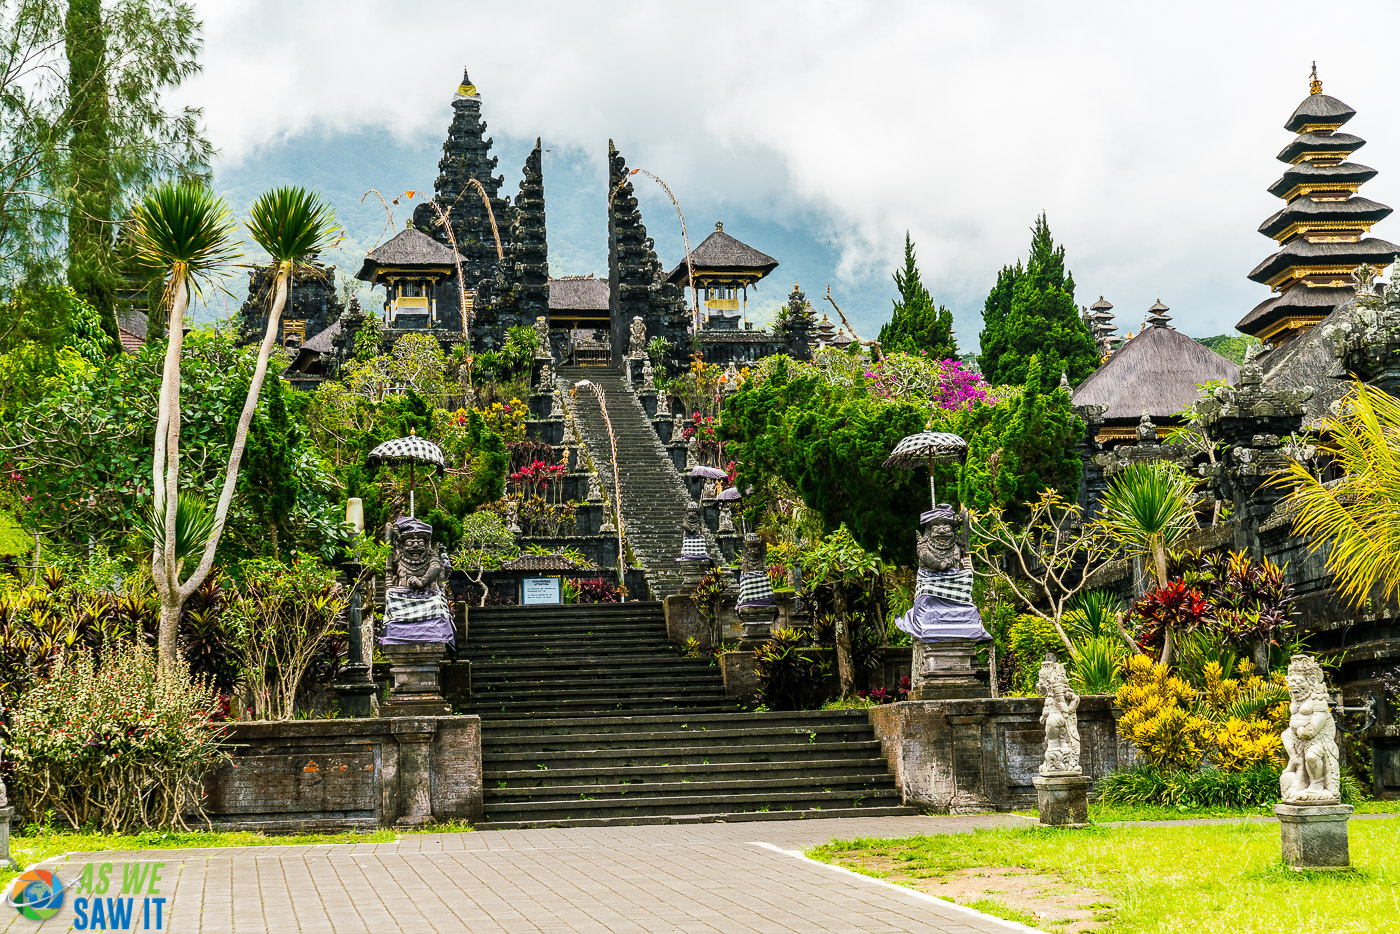 The mother temple of Pura Besakih with no tourists.